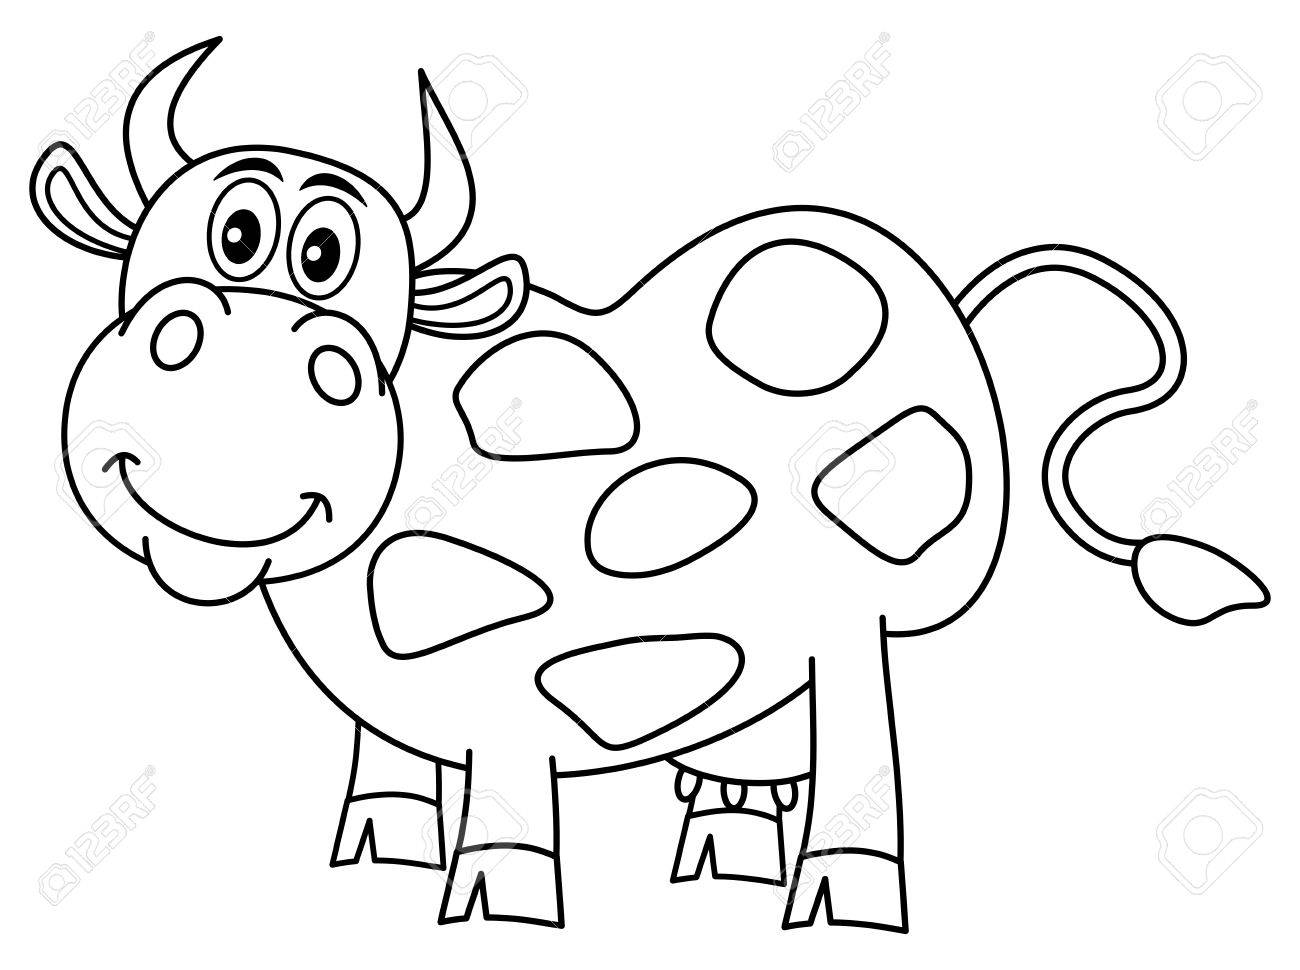 Smiling Huge Cow For Coloring Royalty Free Cliparts, Vectors, And ...